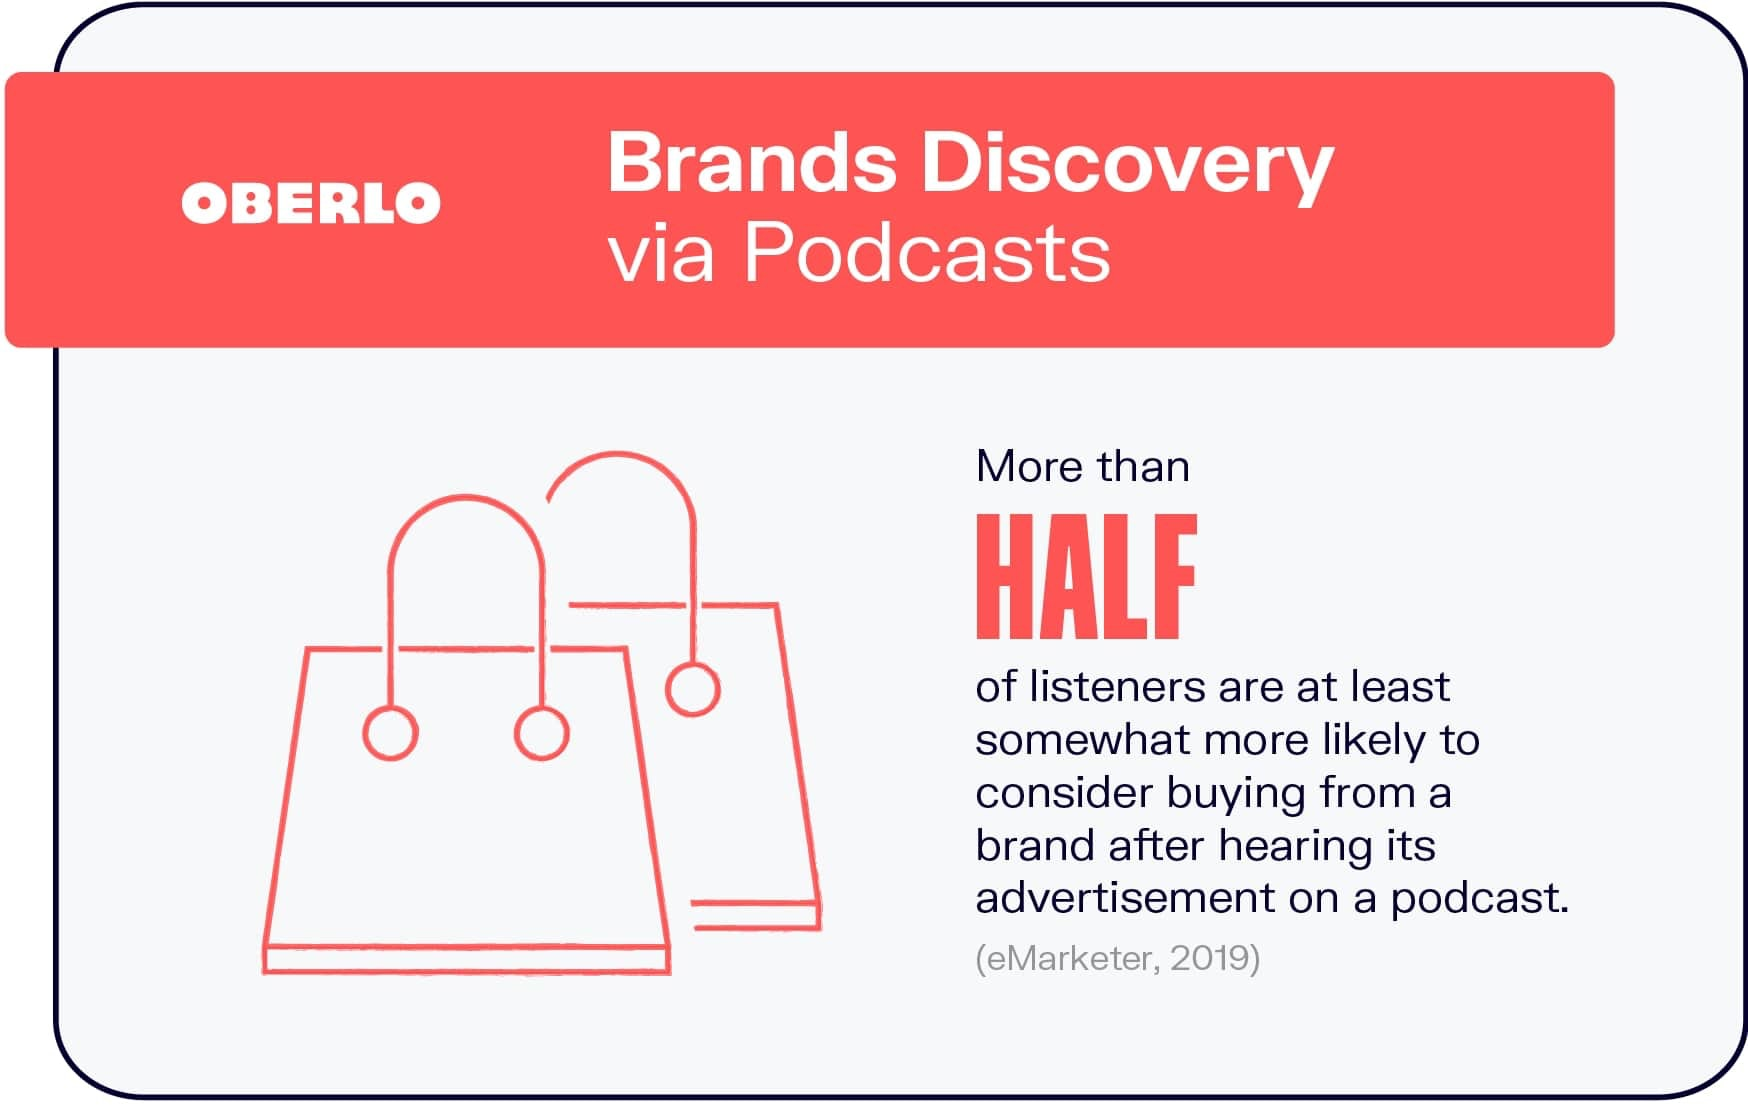 Brands Discovery via Podcasts